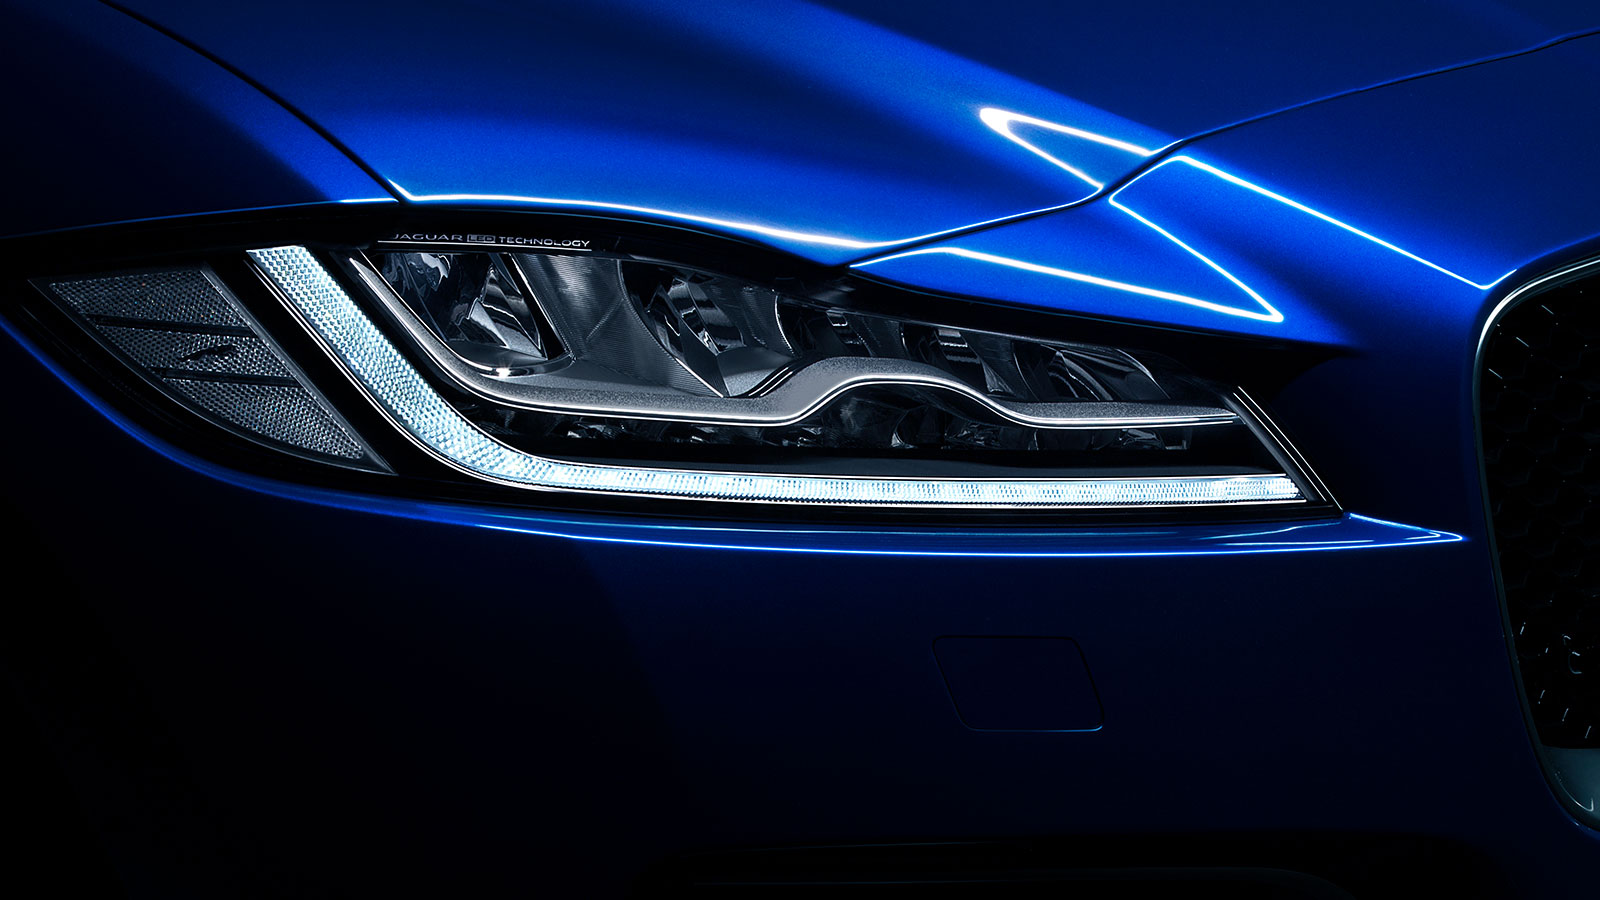 Jaguar F-PACE Blue Exterior Headlight.